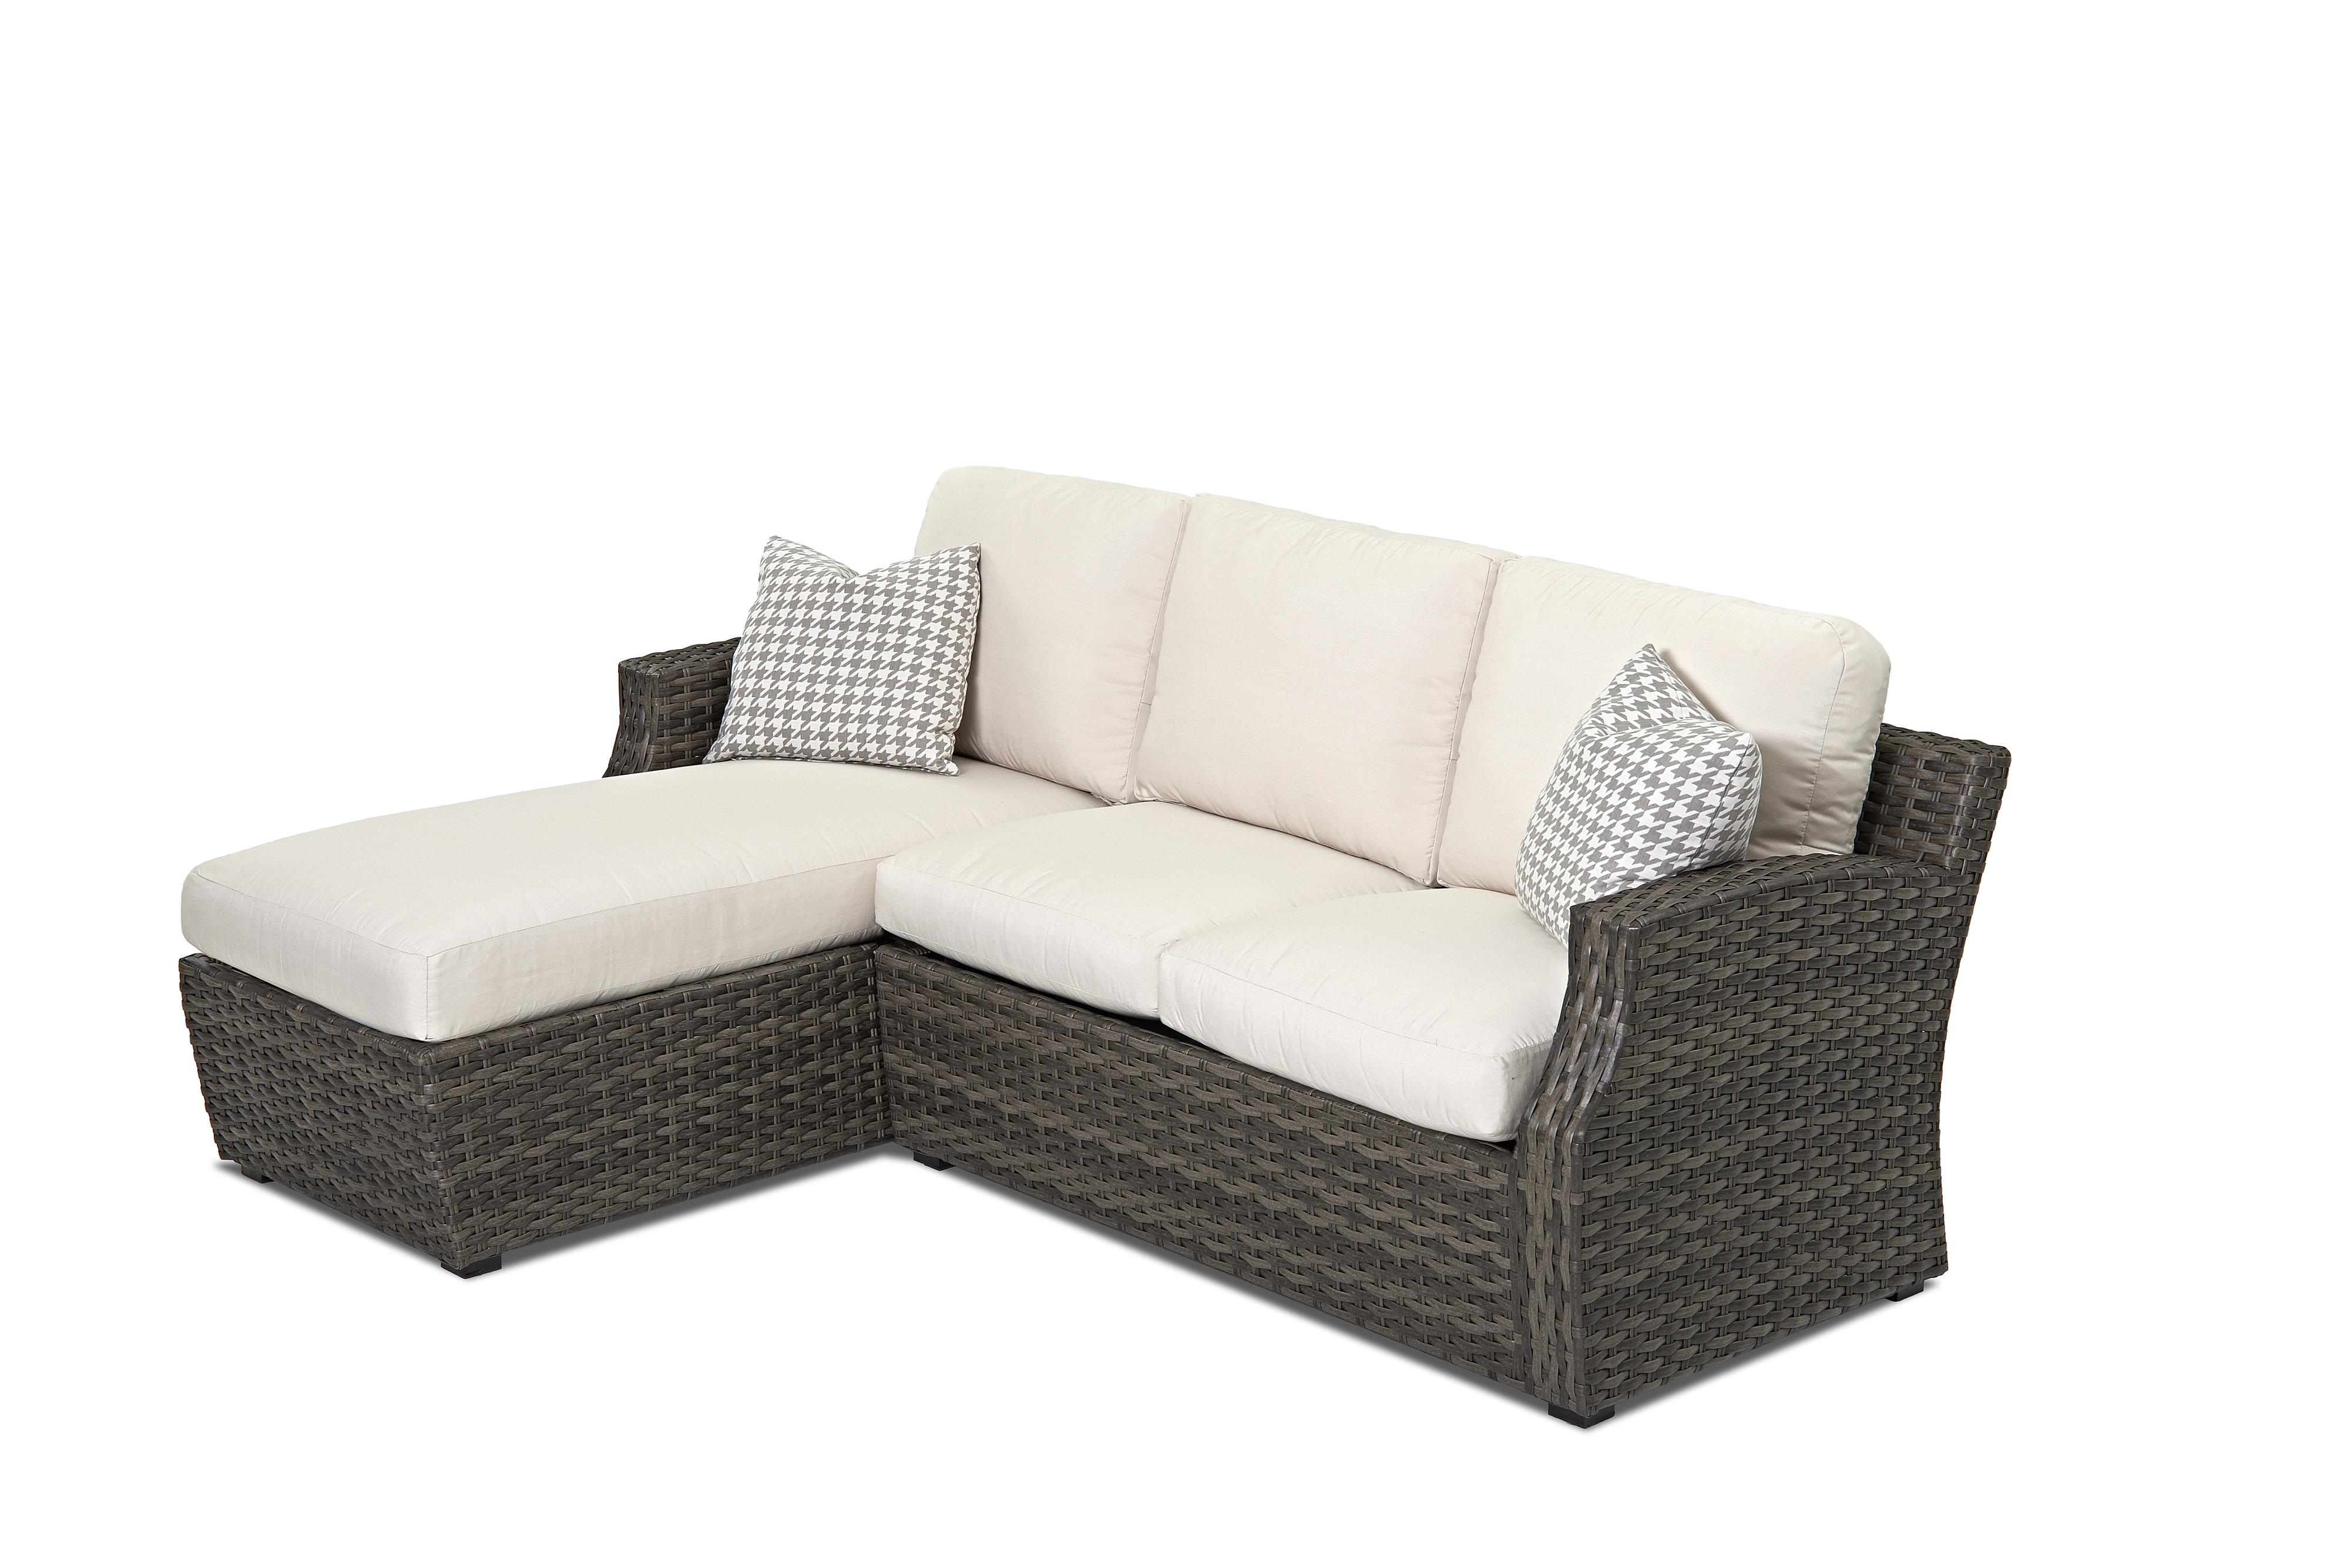 outdoor chaise lounge chair with ottoman foldable indoor klaussner cascade sectional sofa